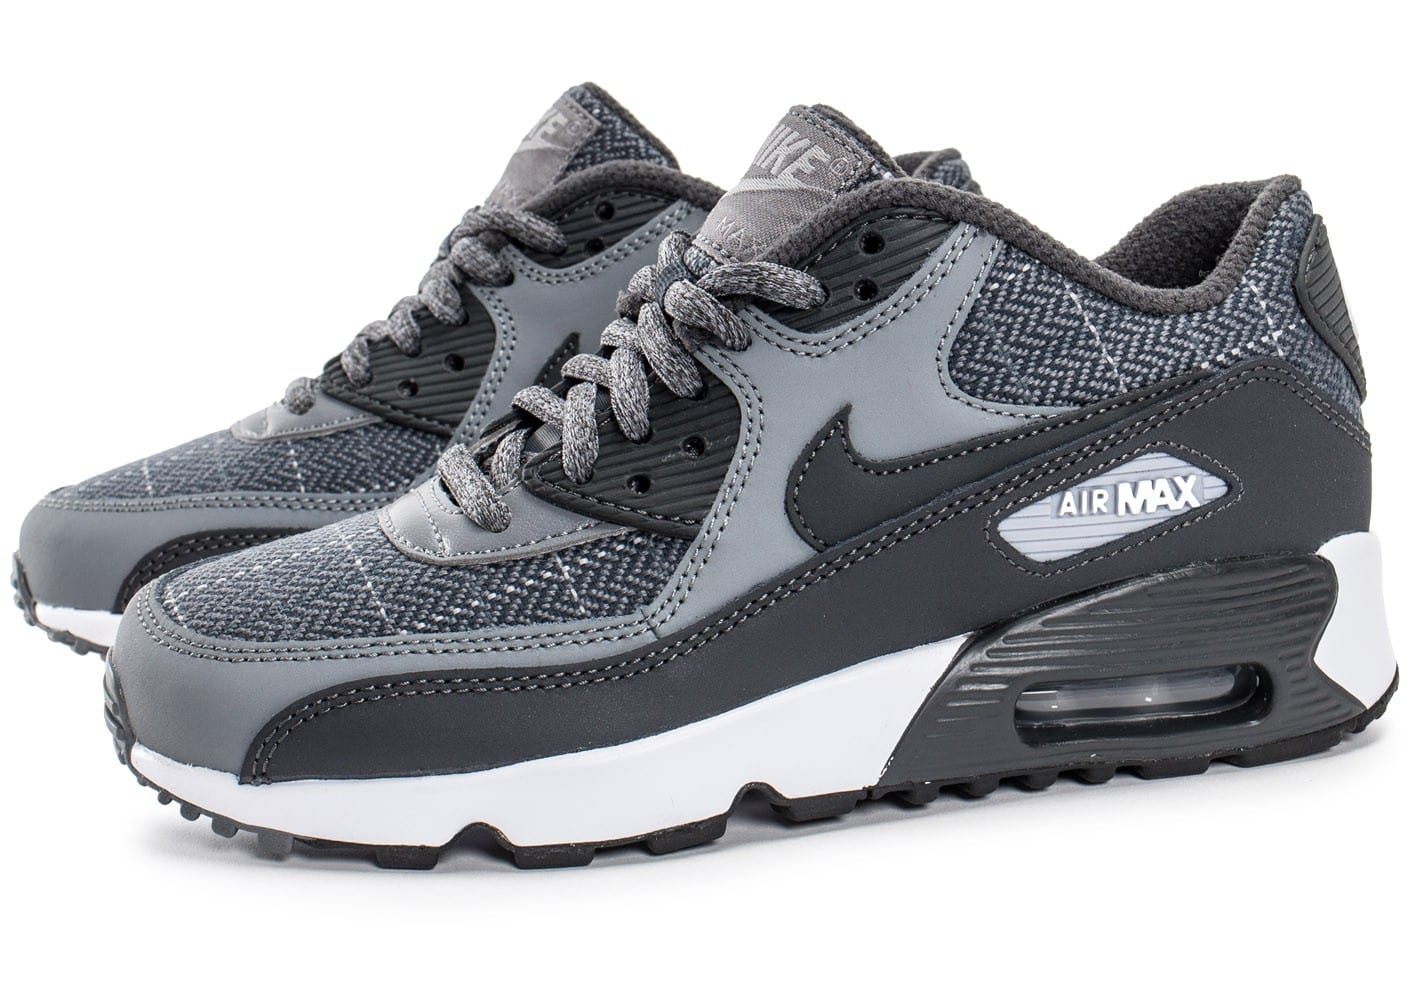 nike air max 90 se wool grise chaussures femme chausport. Black Bedroom Furniture Sets. Home Design Ideas